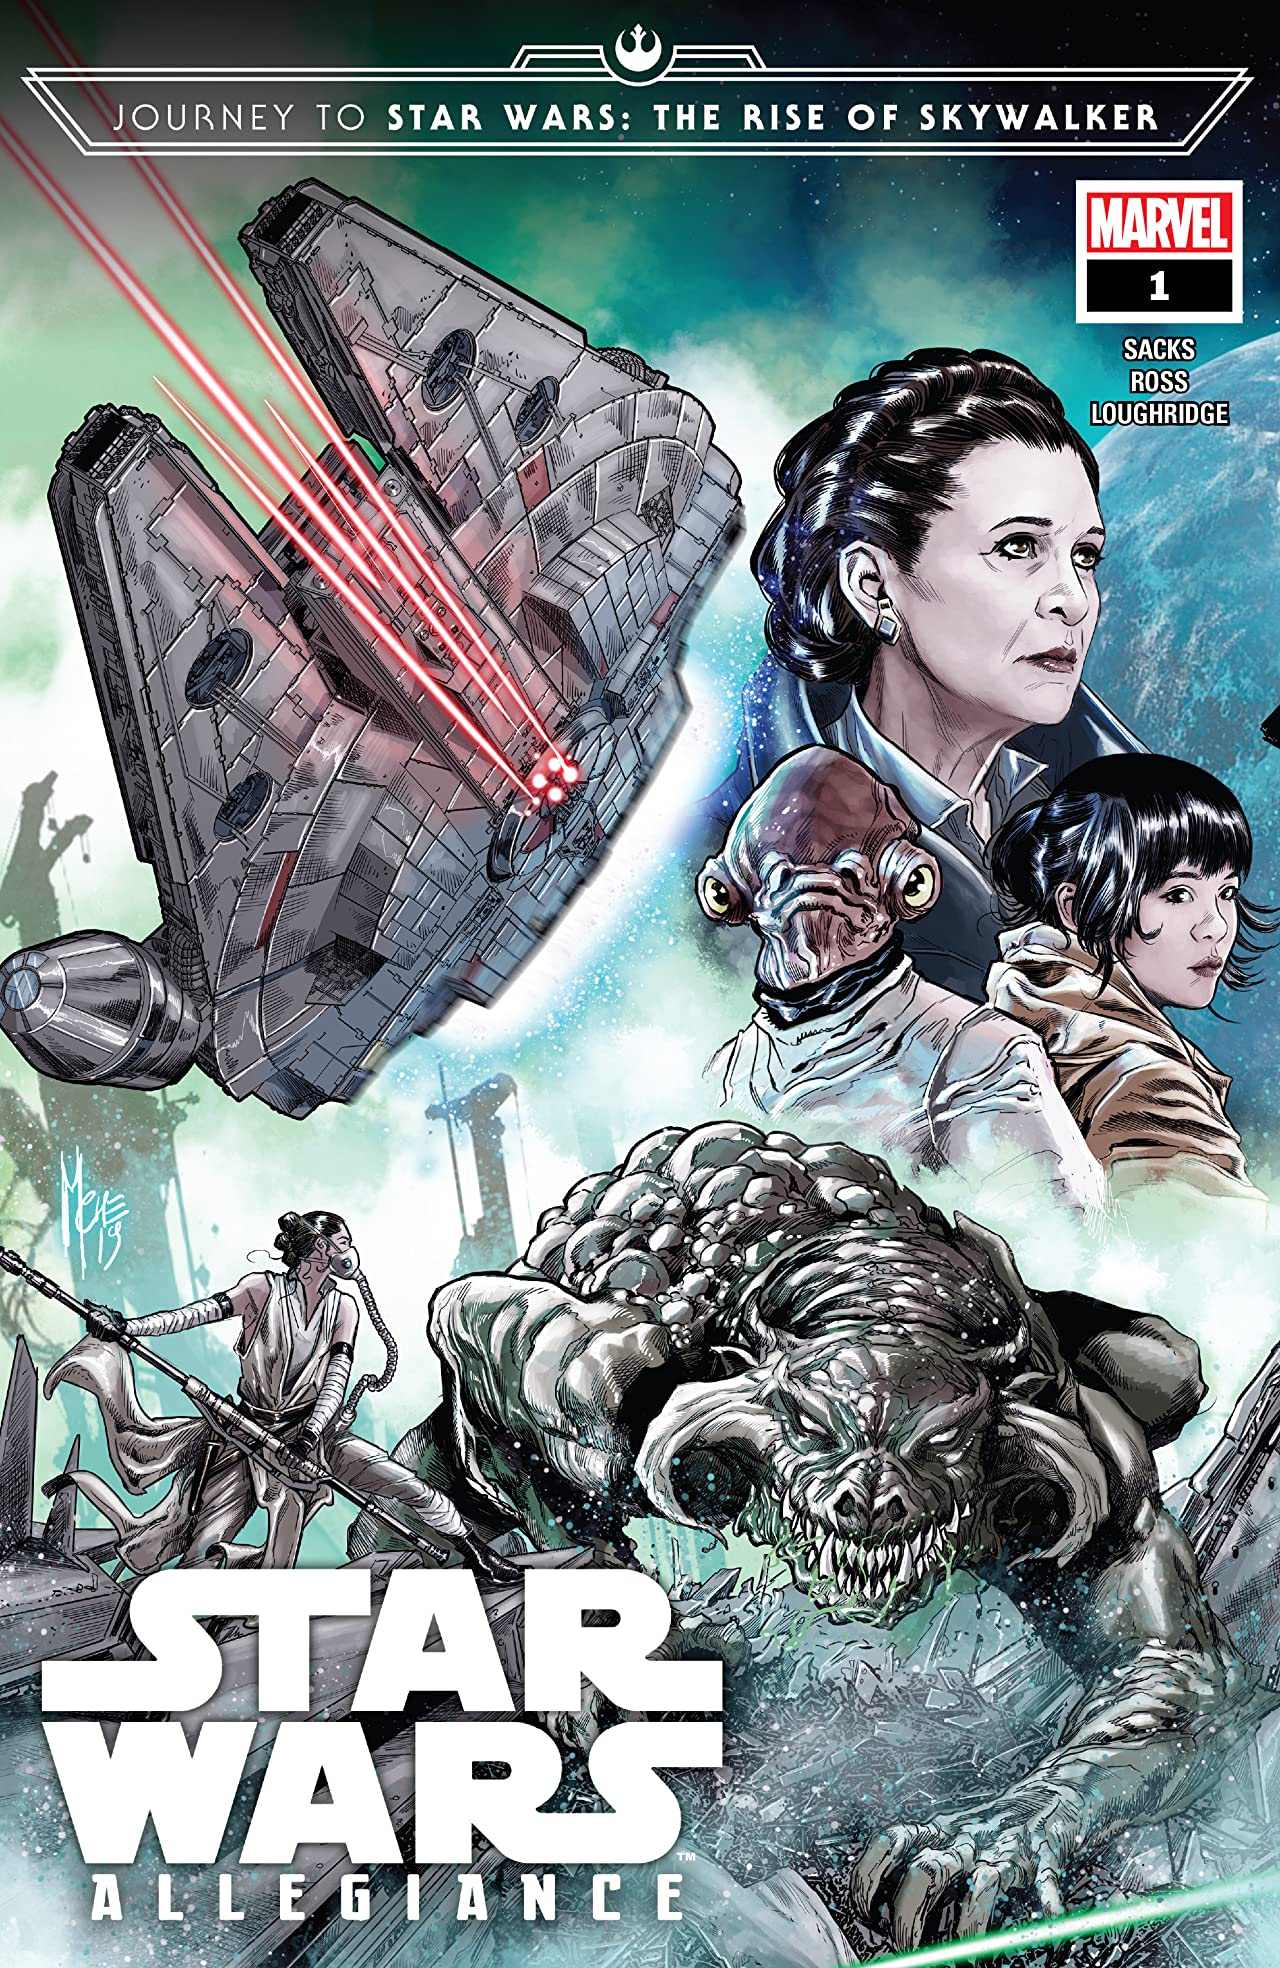 Journey To Star Wars: The Rise Of Skywalker - Allegiance (2019) #1 (of 4)